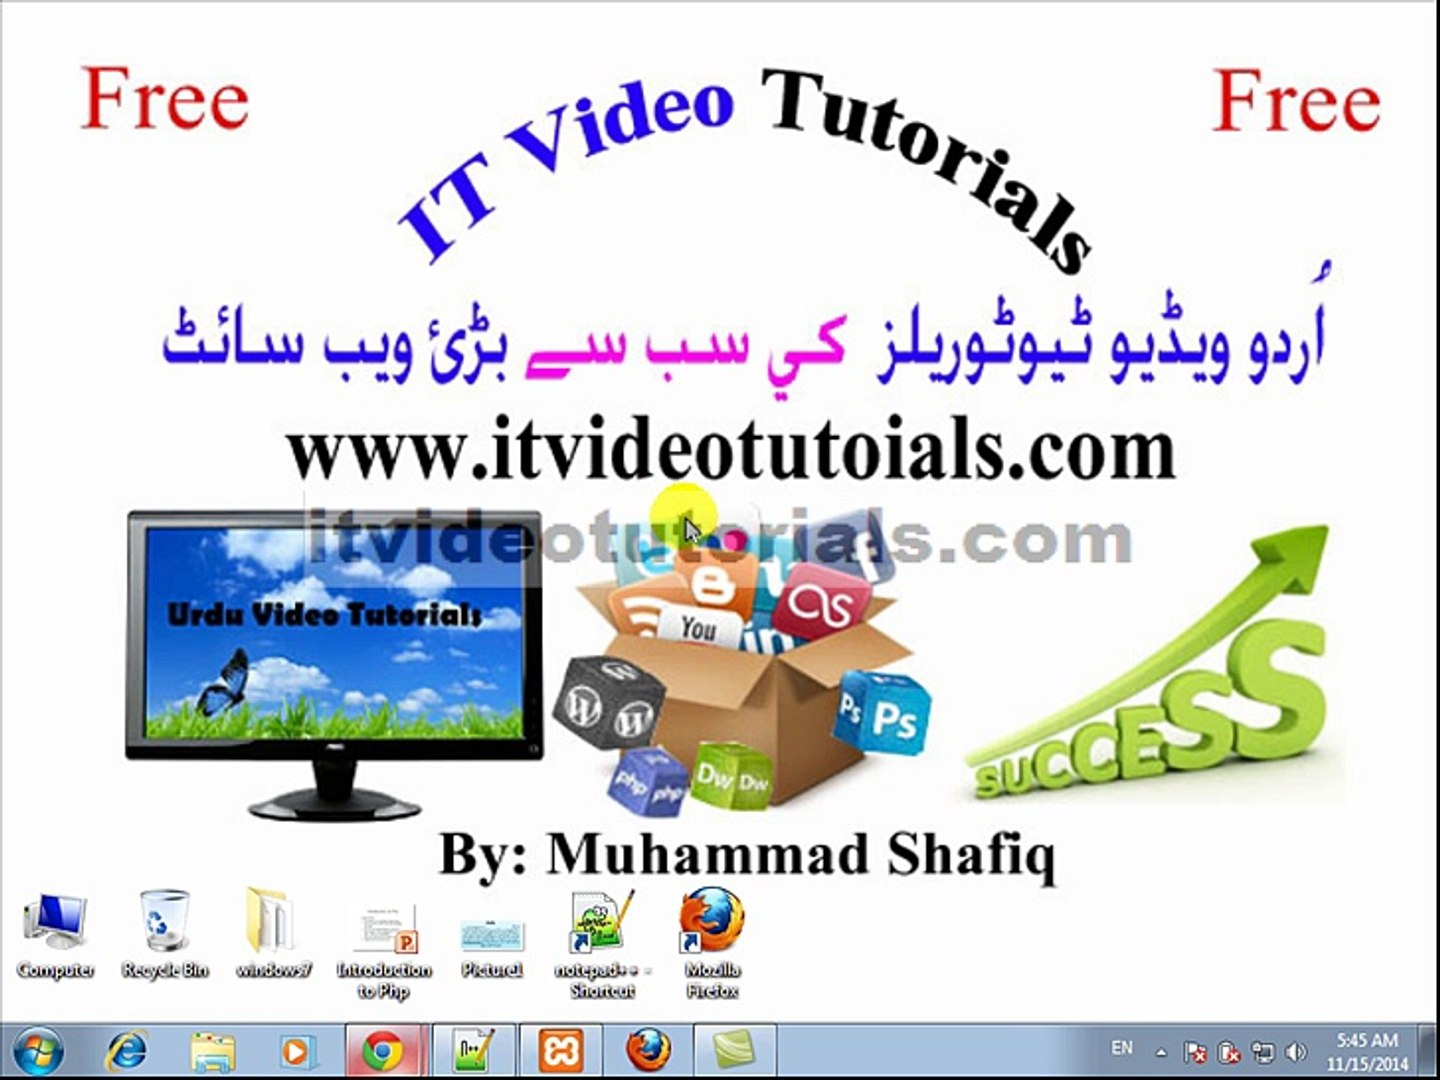 Php tutorials in urdu & hindi How to send data form php form to mysql database part 1